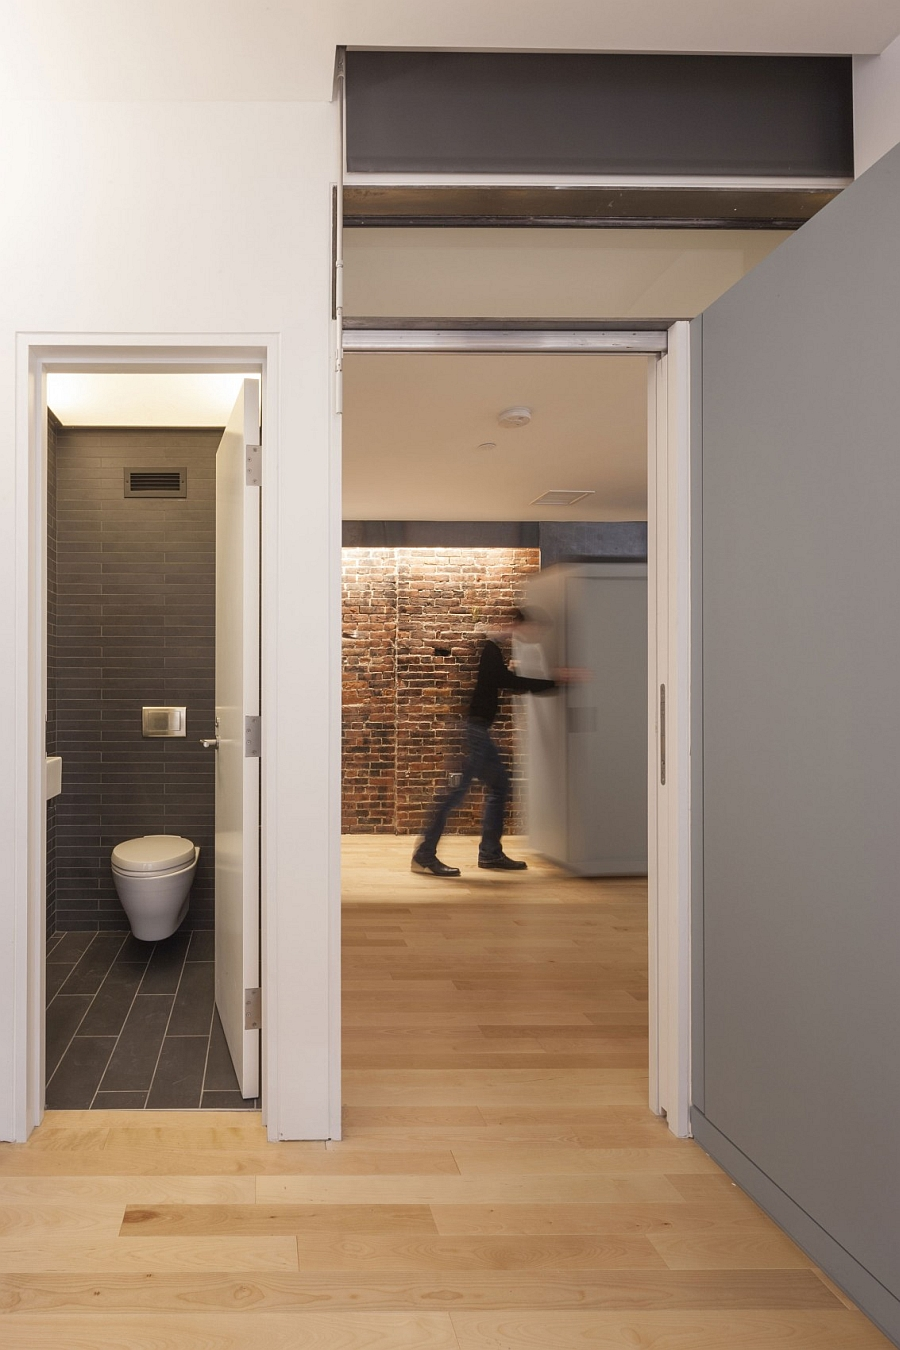 A view of the compact bathroom